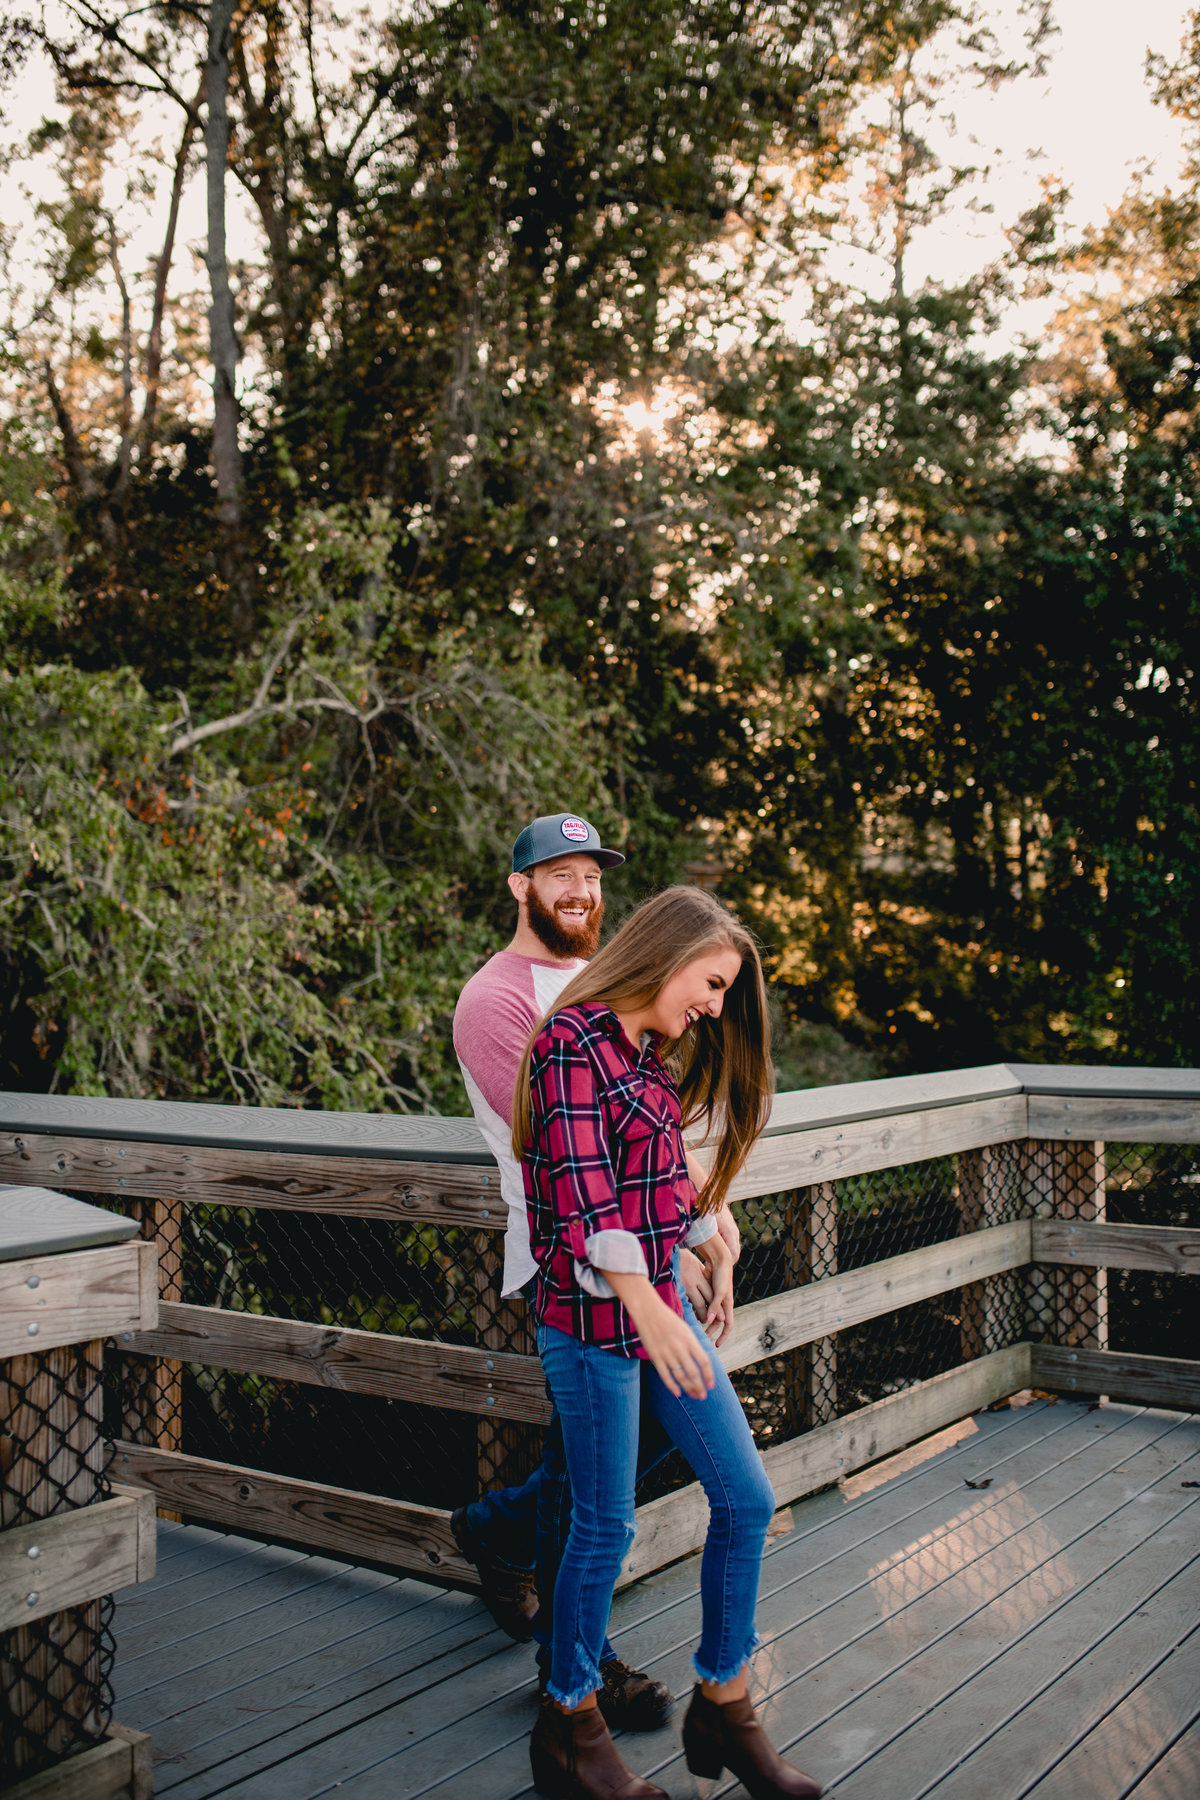 Lifestyle engagement photographer creating funny, fun, and memorable experiences in Florida.